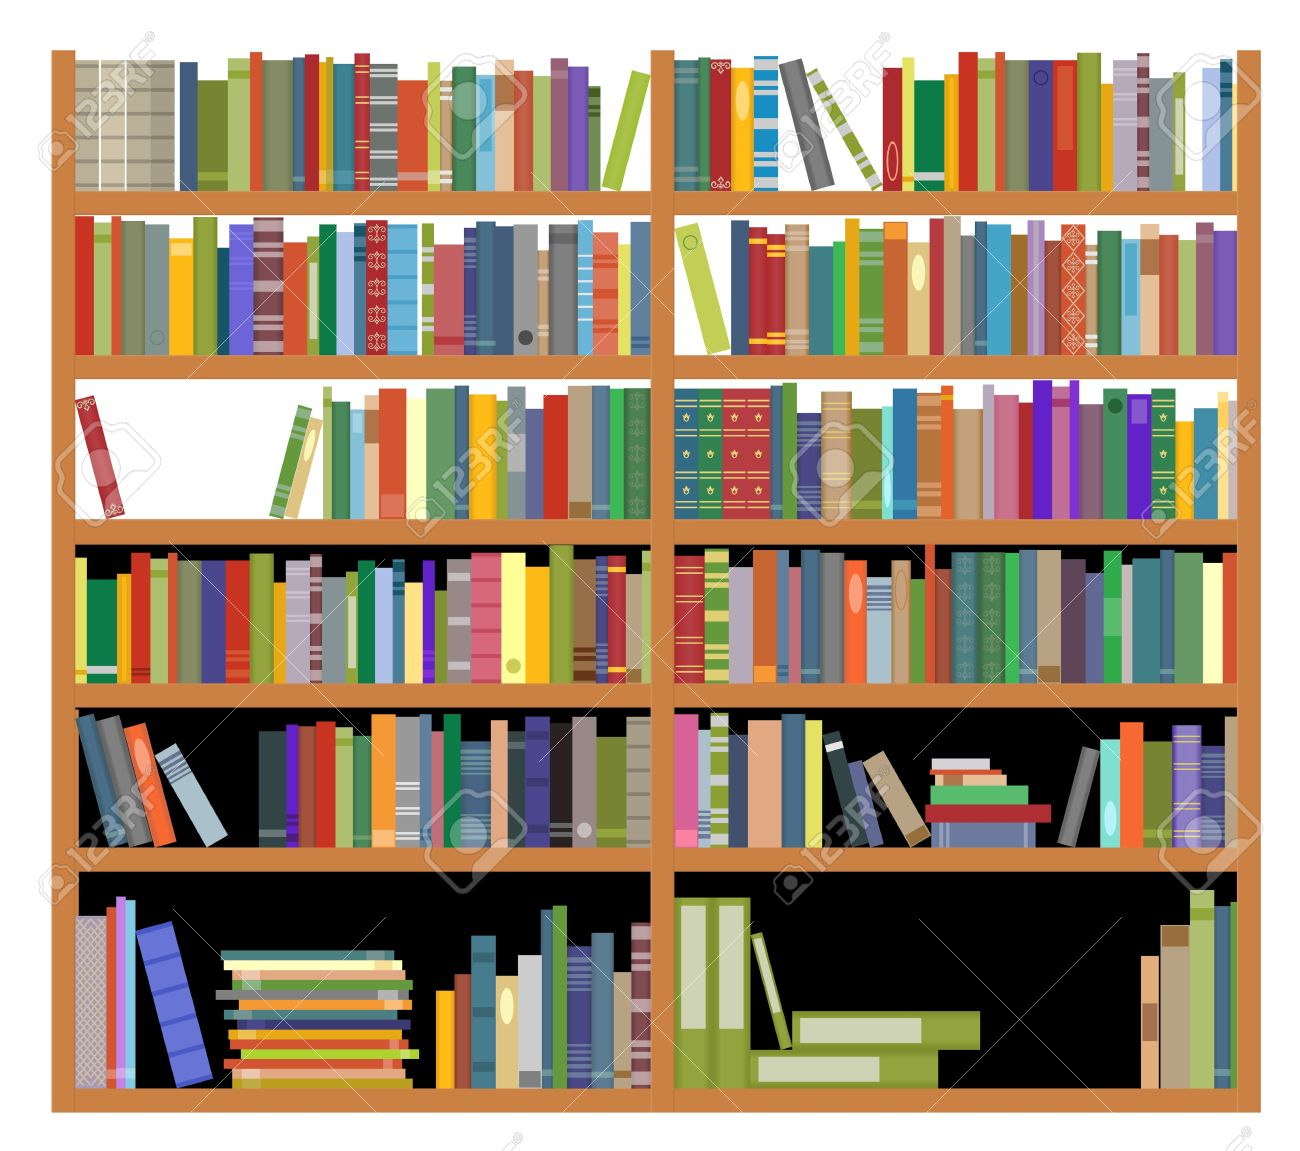 15,068 Bookshelf Stock Illustrations, Cliparts And Royalty Free.